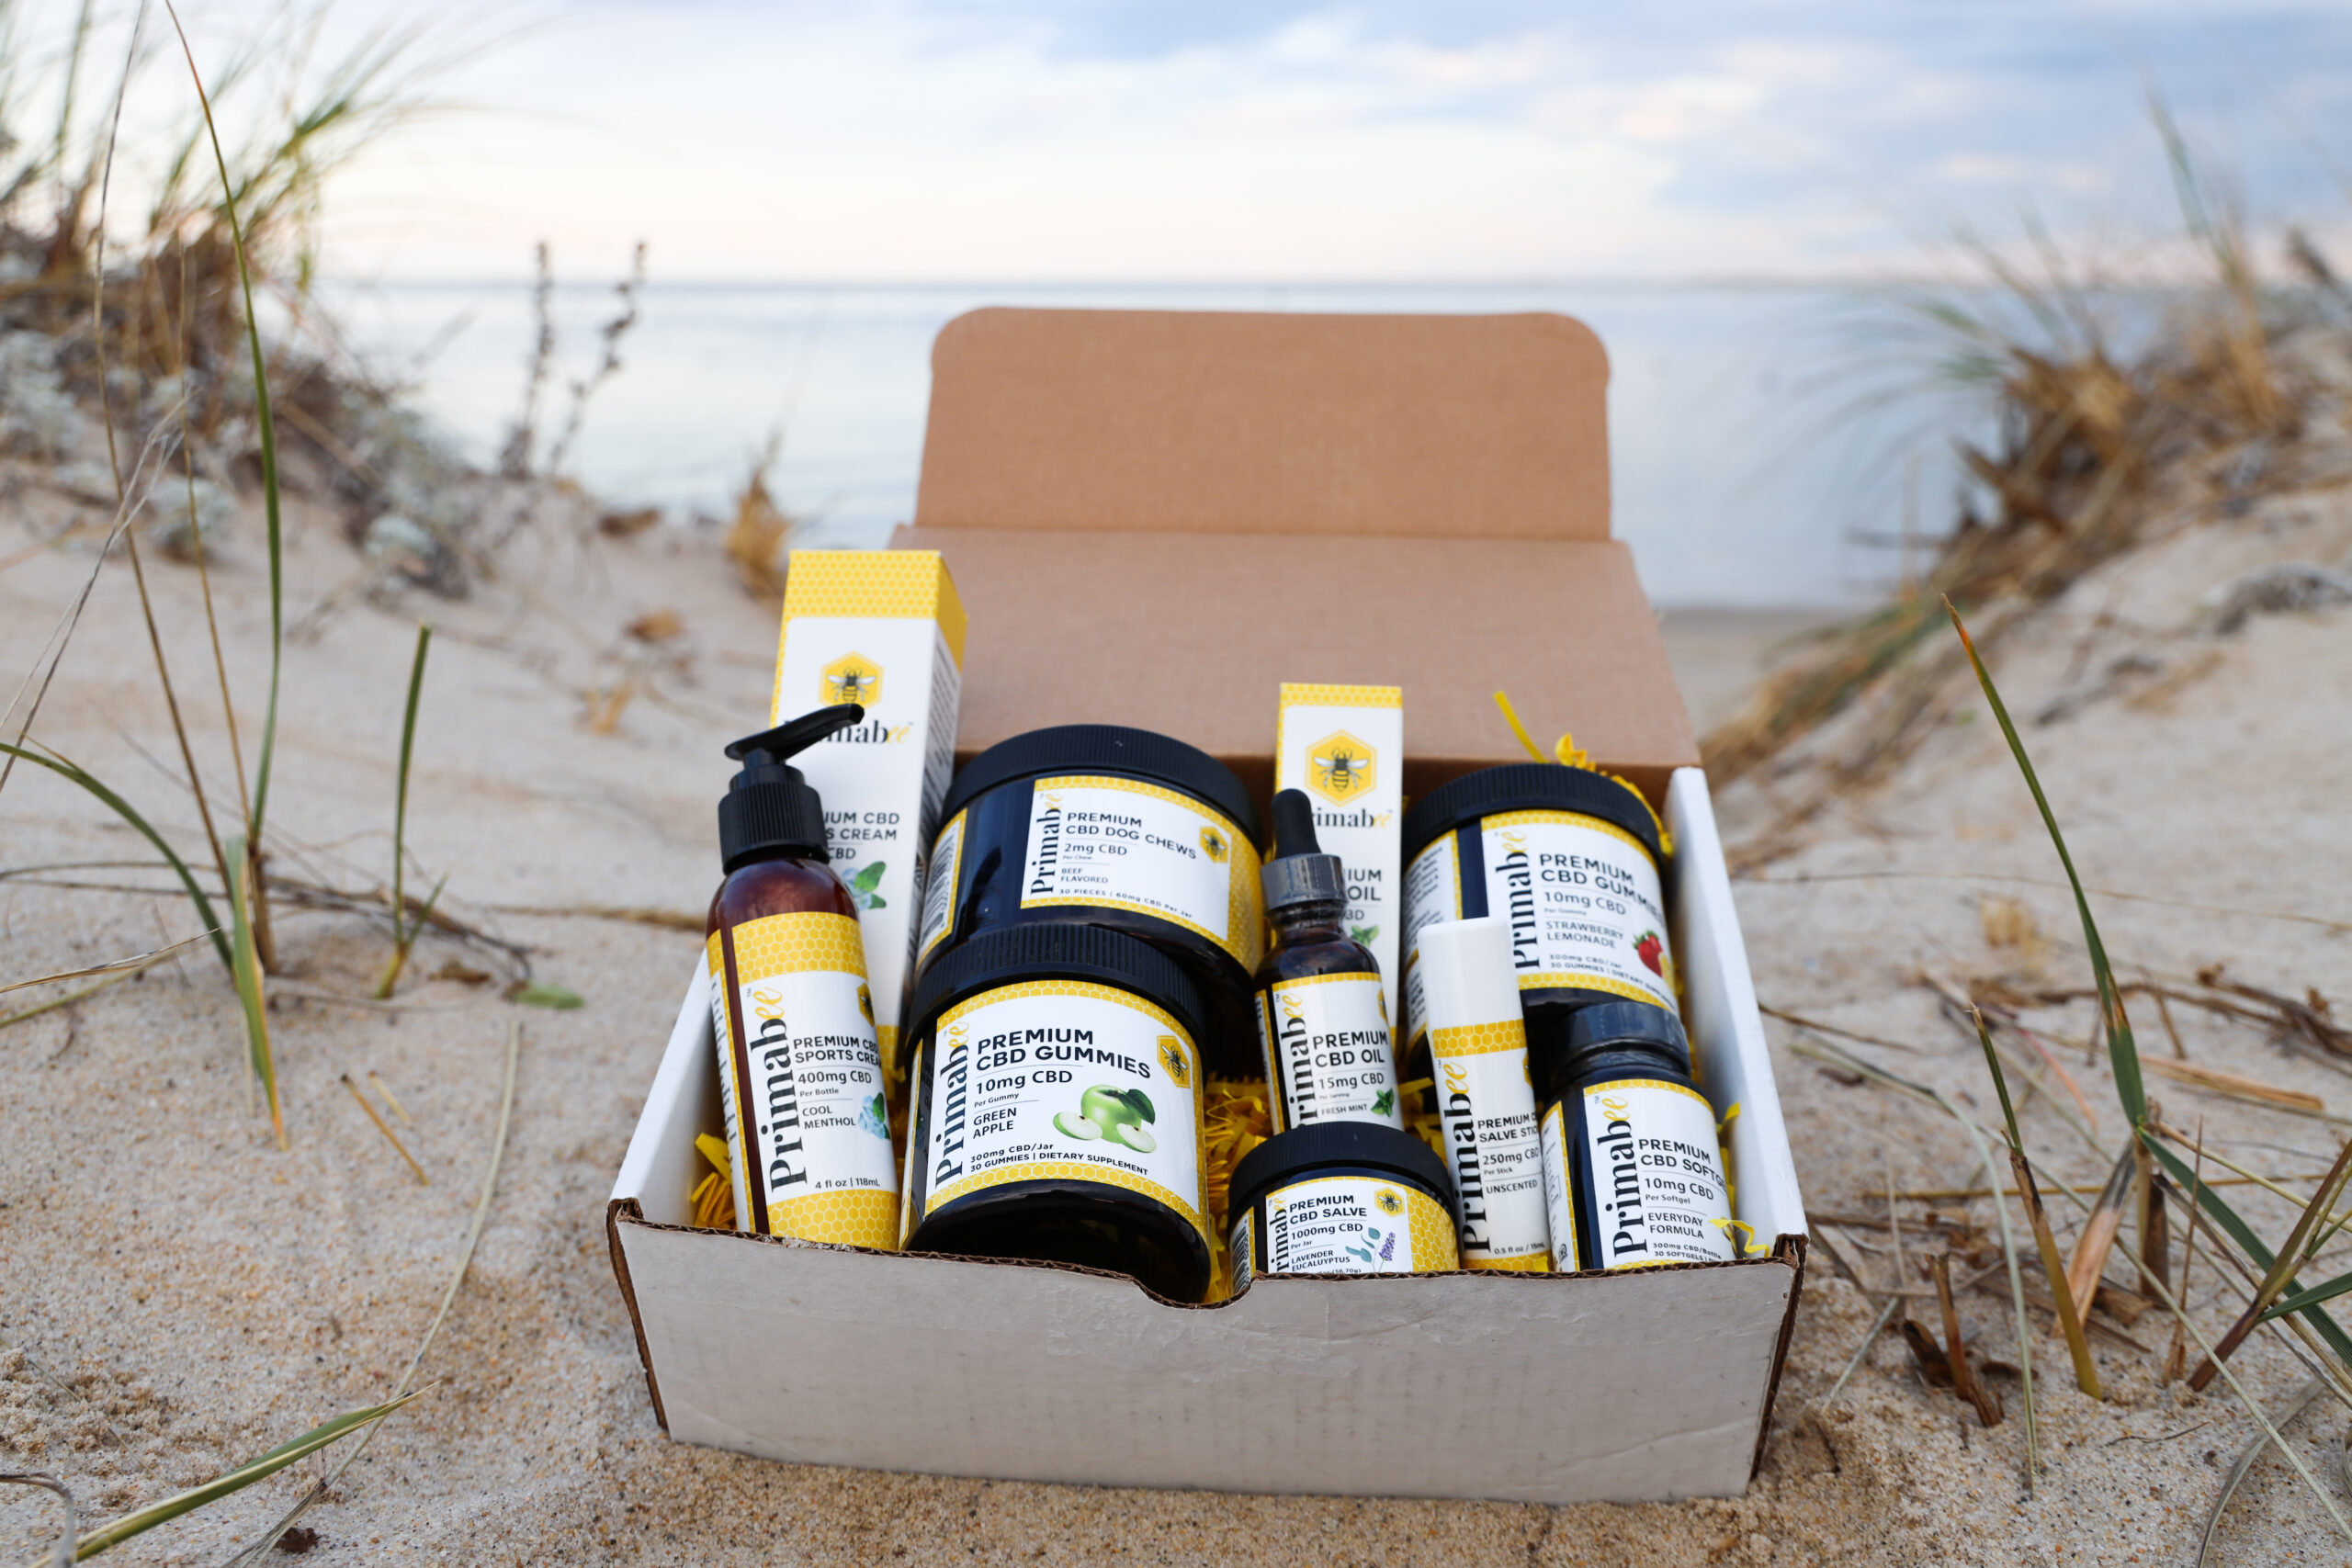 Primabee CBD Proven Ultra-Premium, Potent and Ethical Cannabis Products